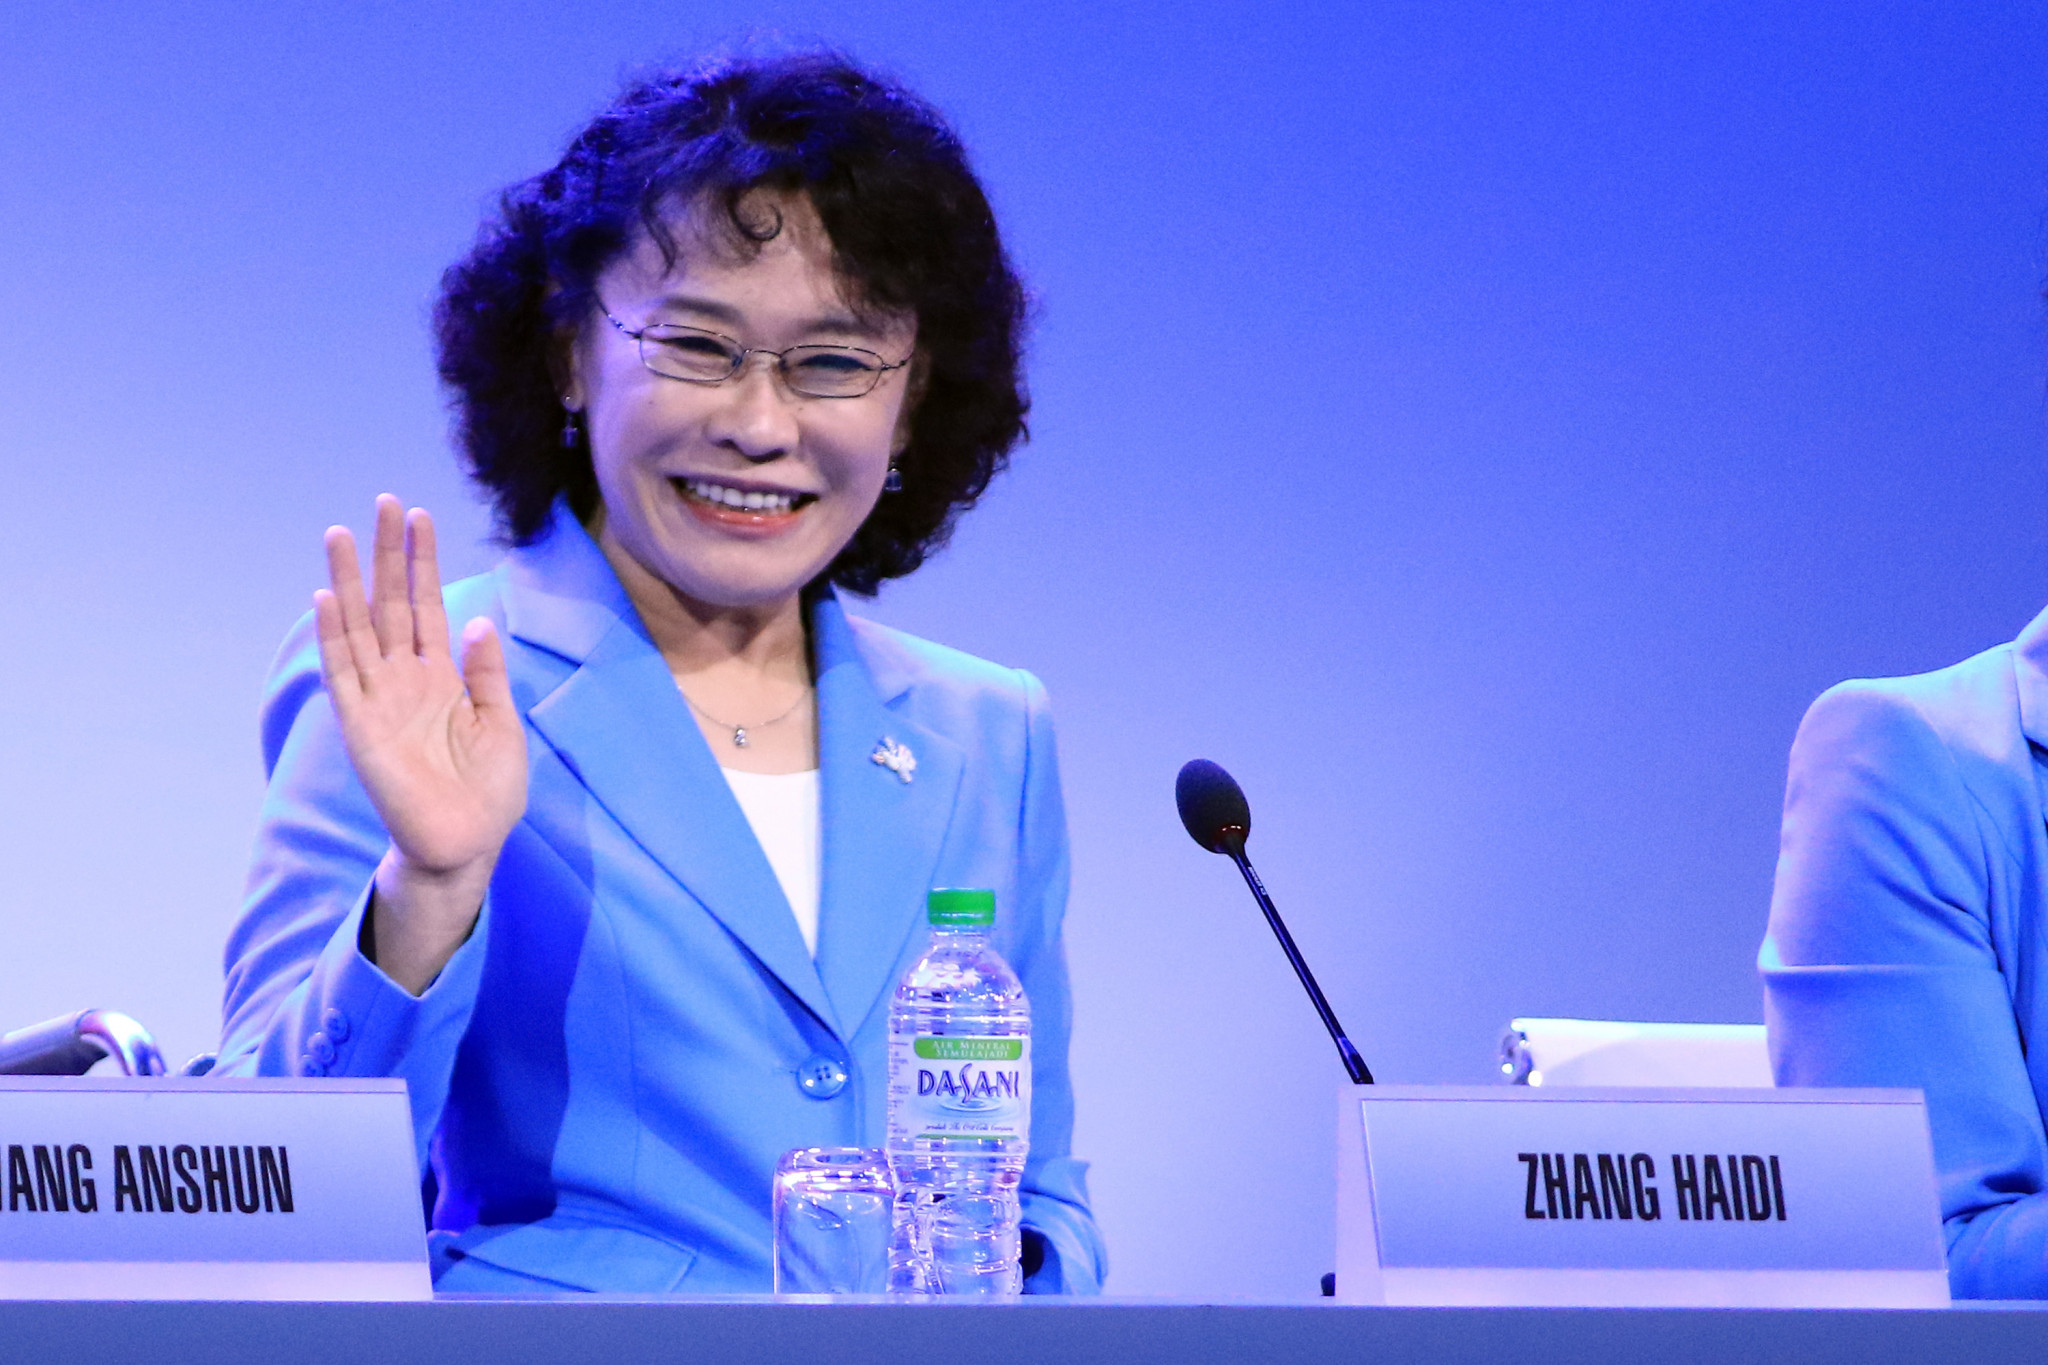 China's Zhang Haidi called on the voting members to trust in her capability and determination to lead the IPC ©Getty Images